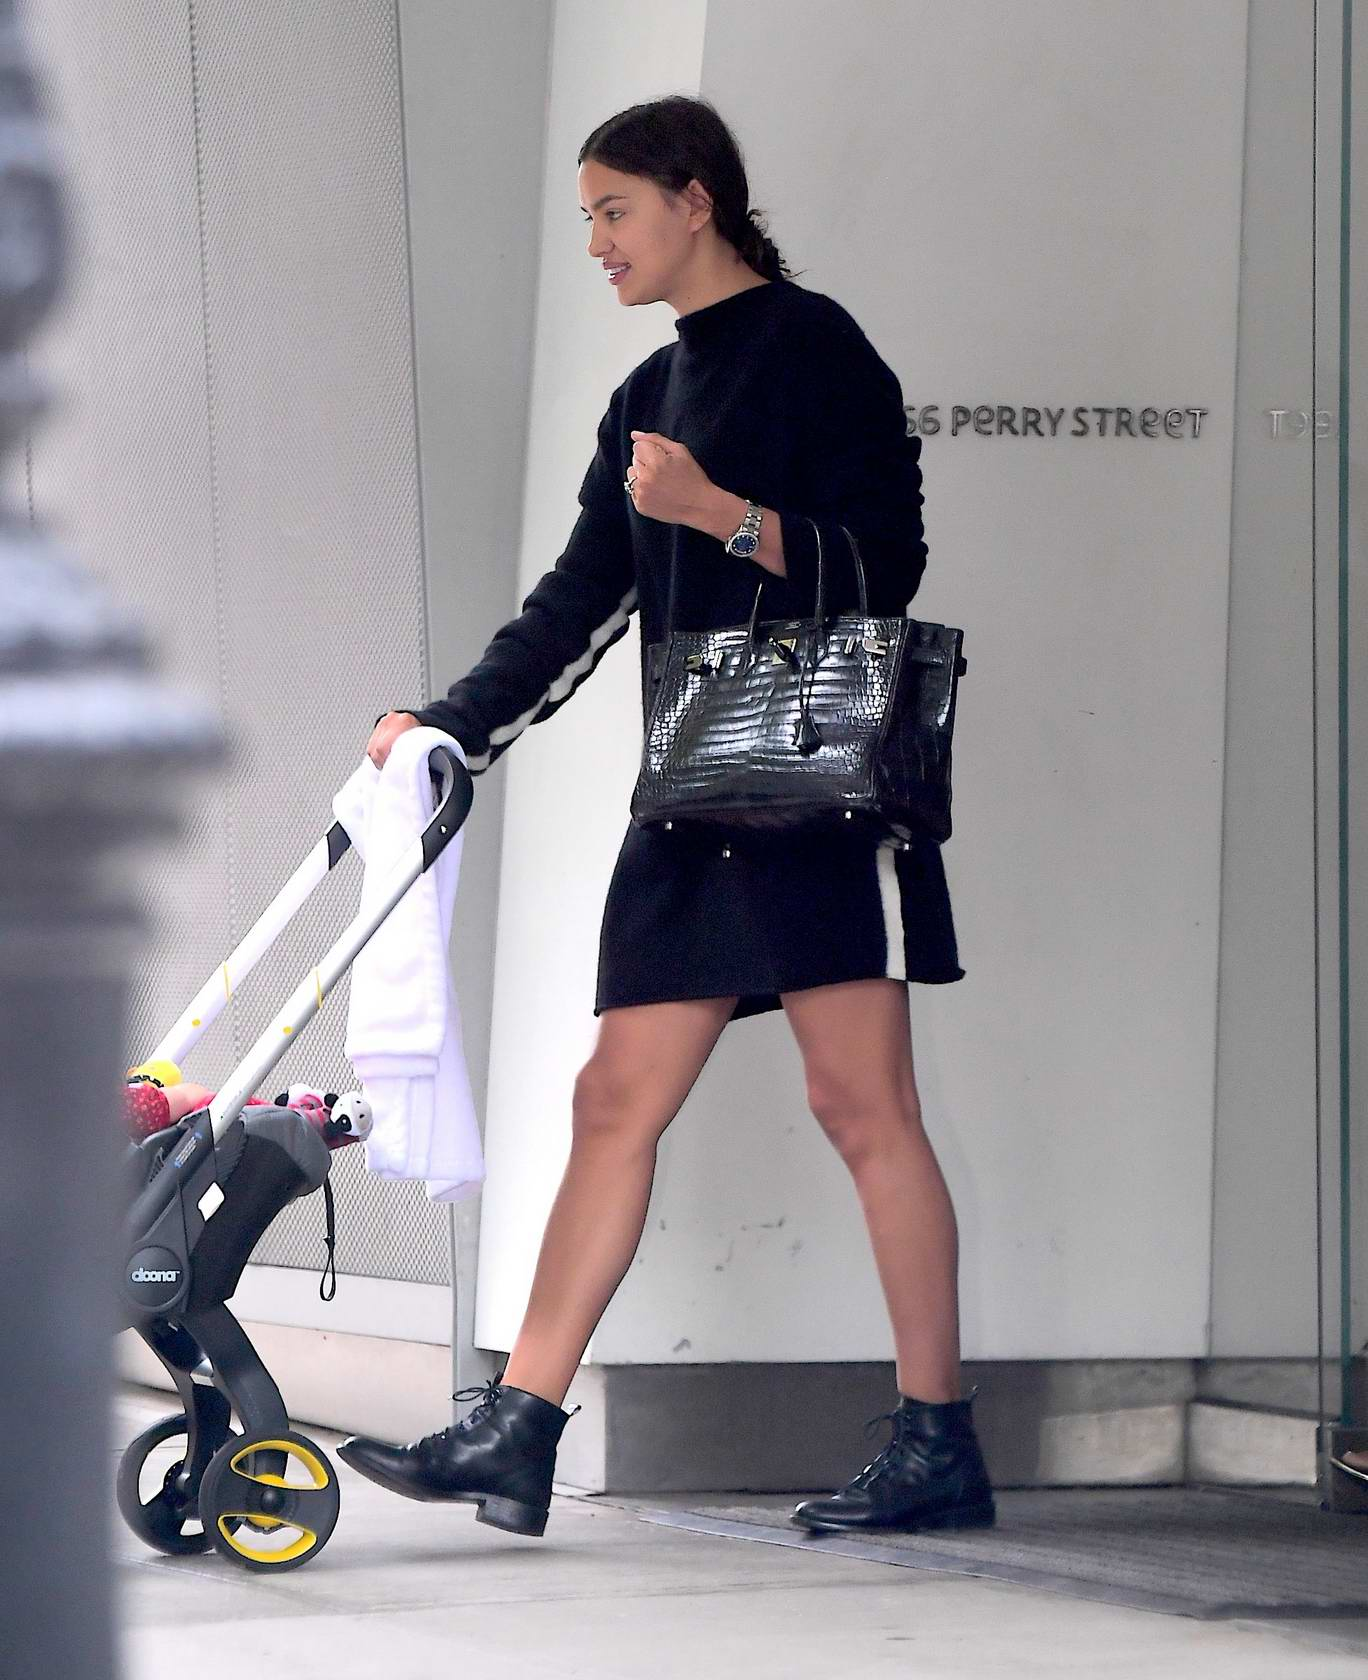 Irina Shayk going for an early morning walk in New York City